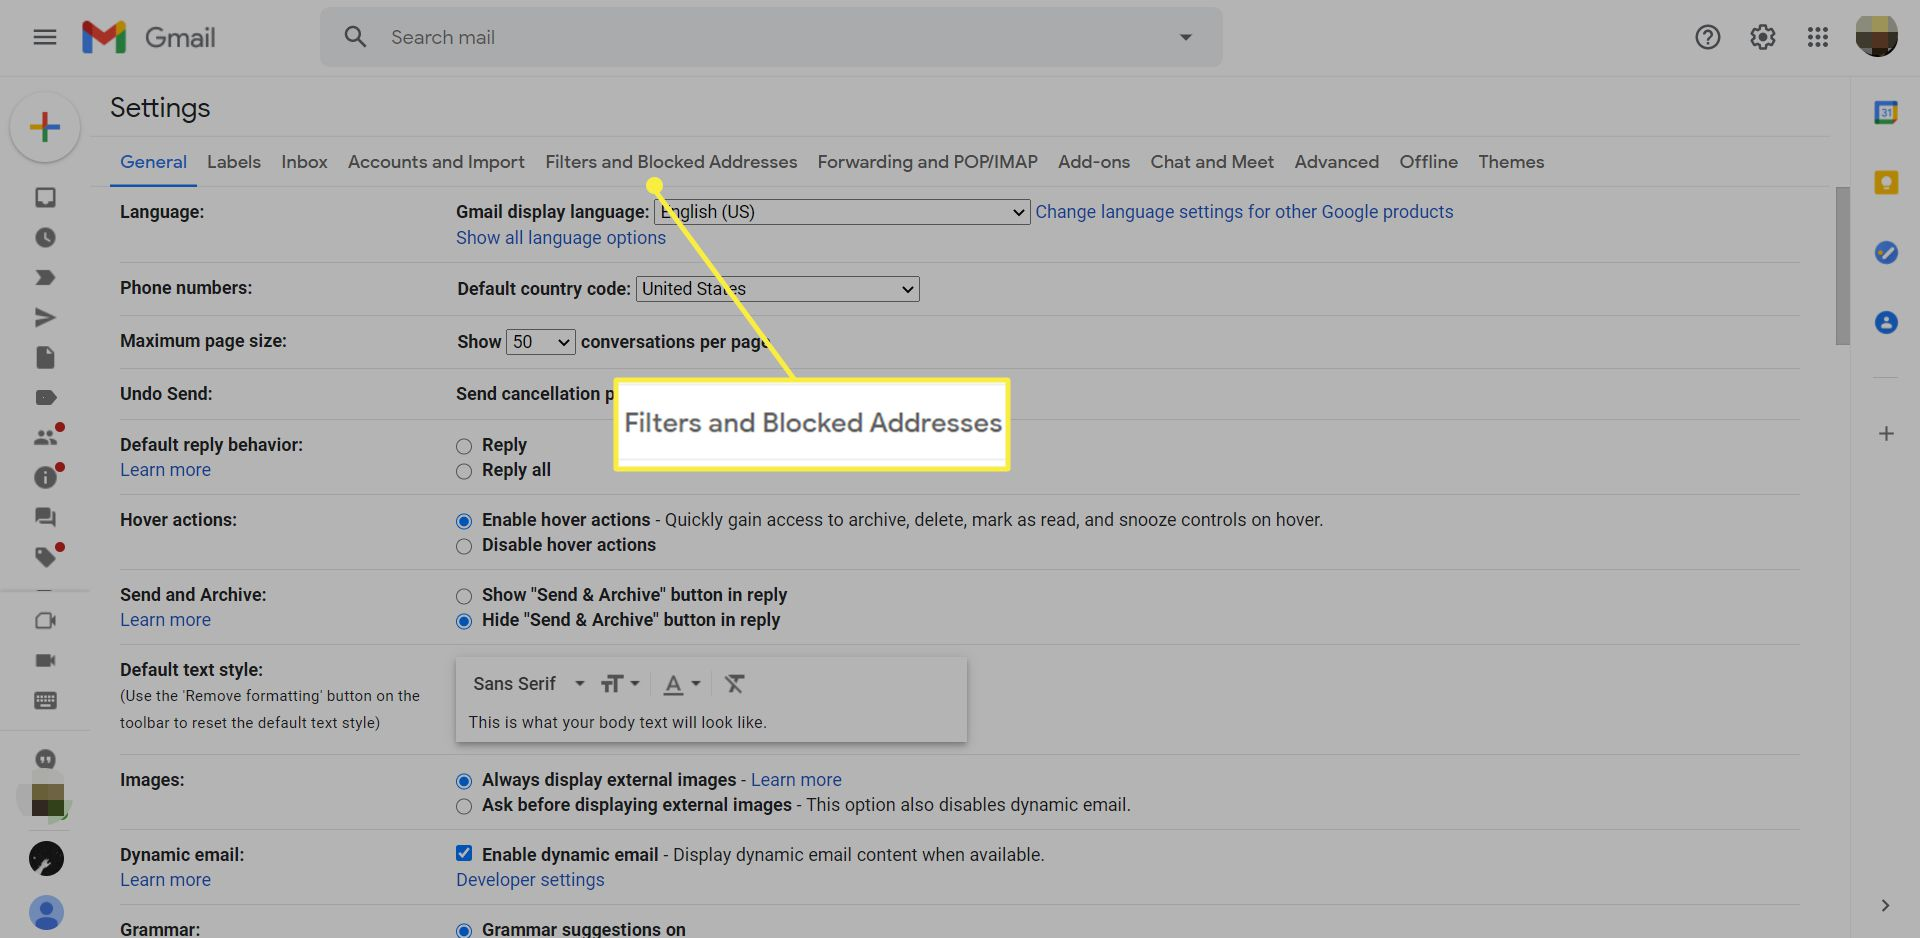 Gmail settings with the Filters and Blocked Addresses tab highlighted